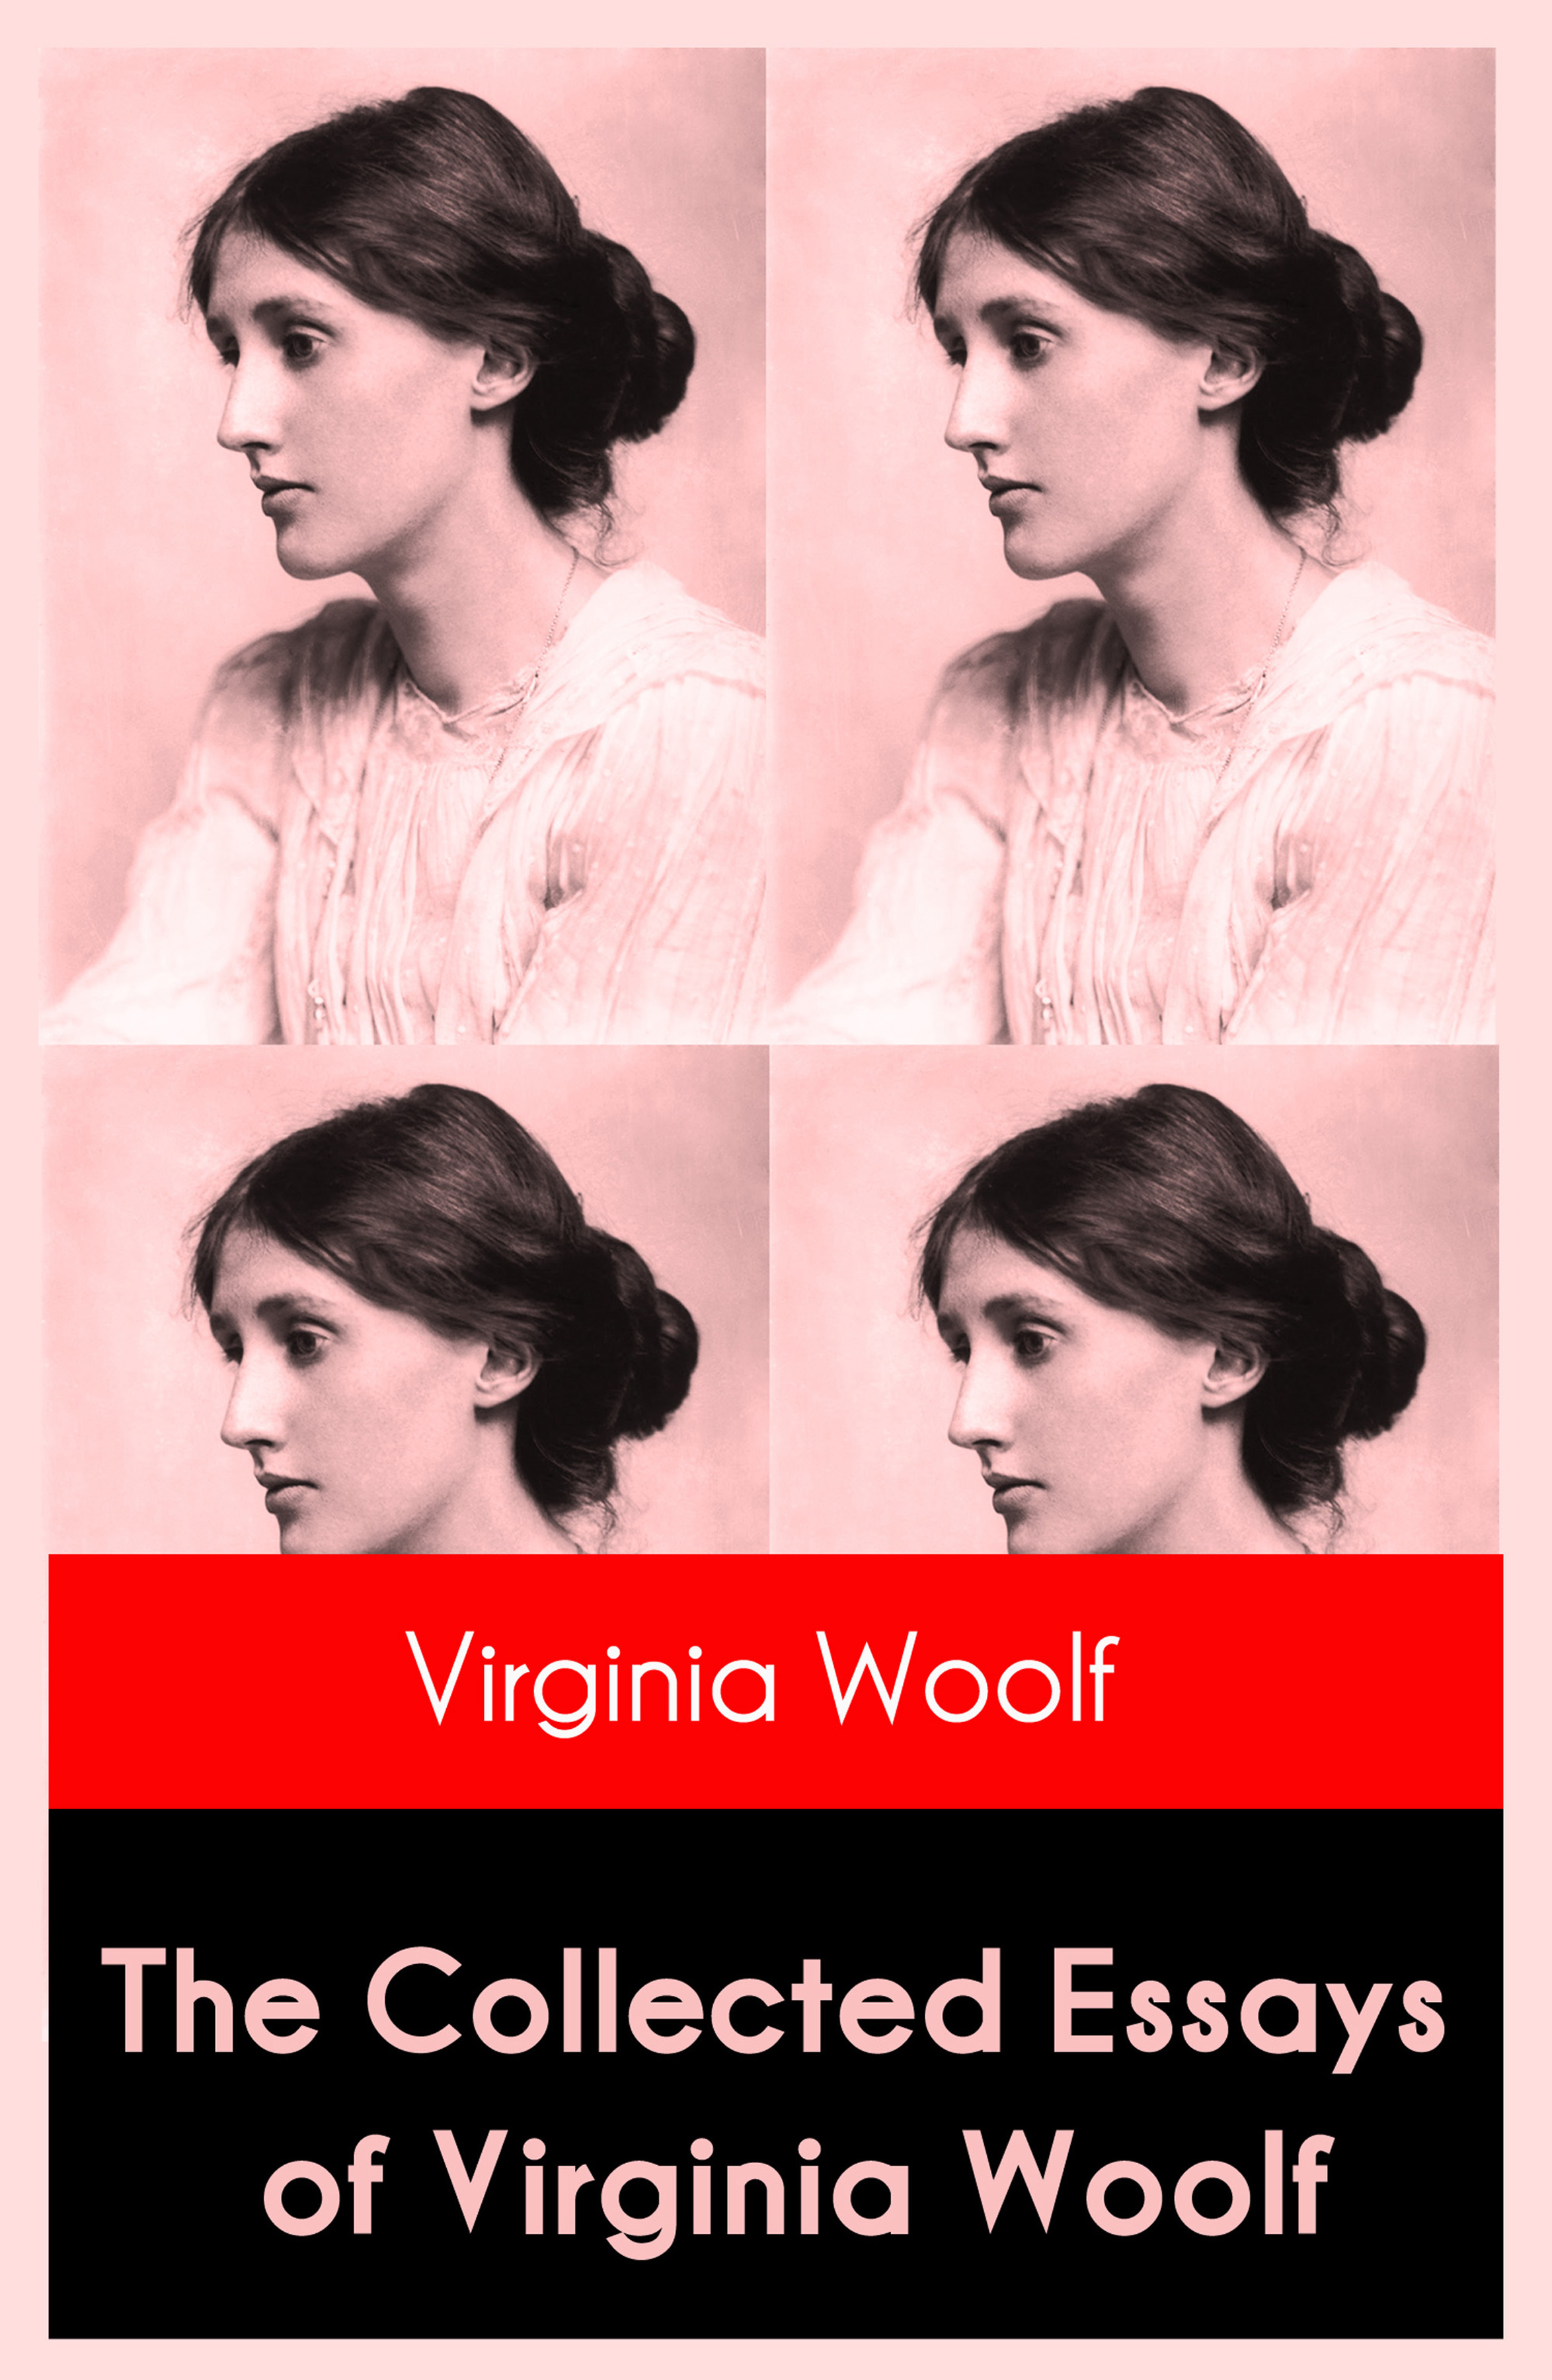 Virginia Woolf The Collected Essays of Virginia Woolf virginia woolf the complete novels of virginia woolf 9 unabridged novels